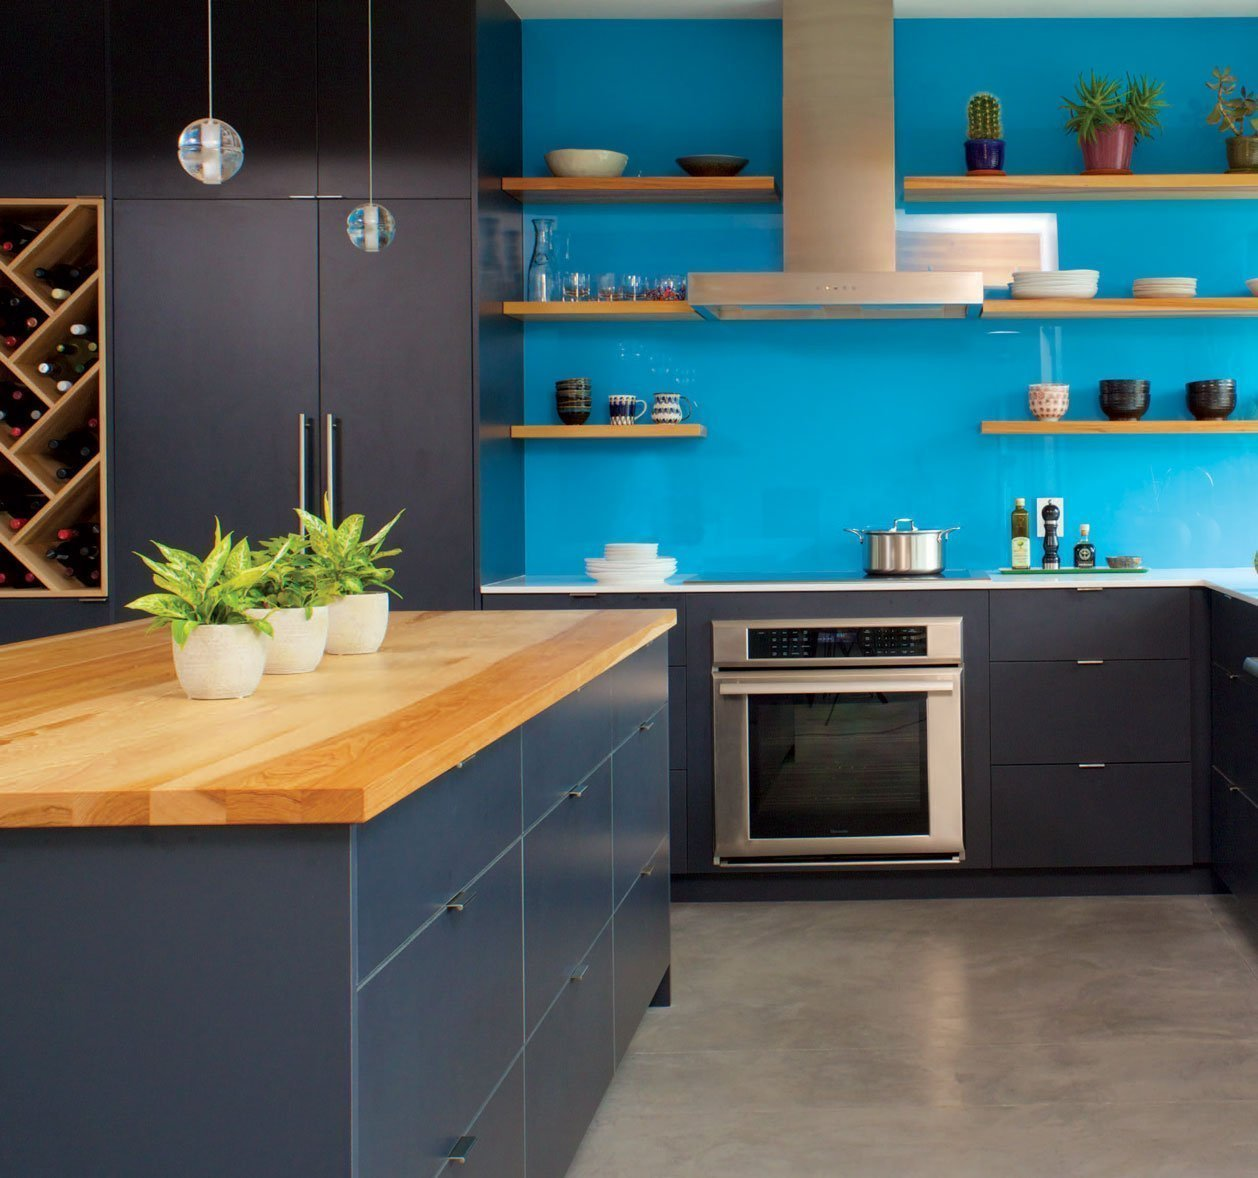 Blue and Black kitchen